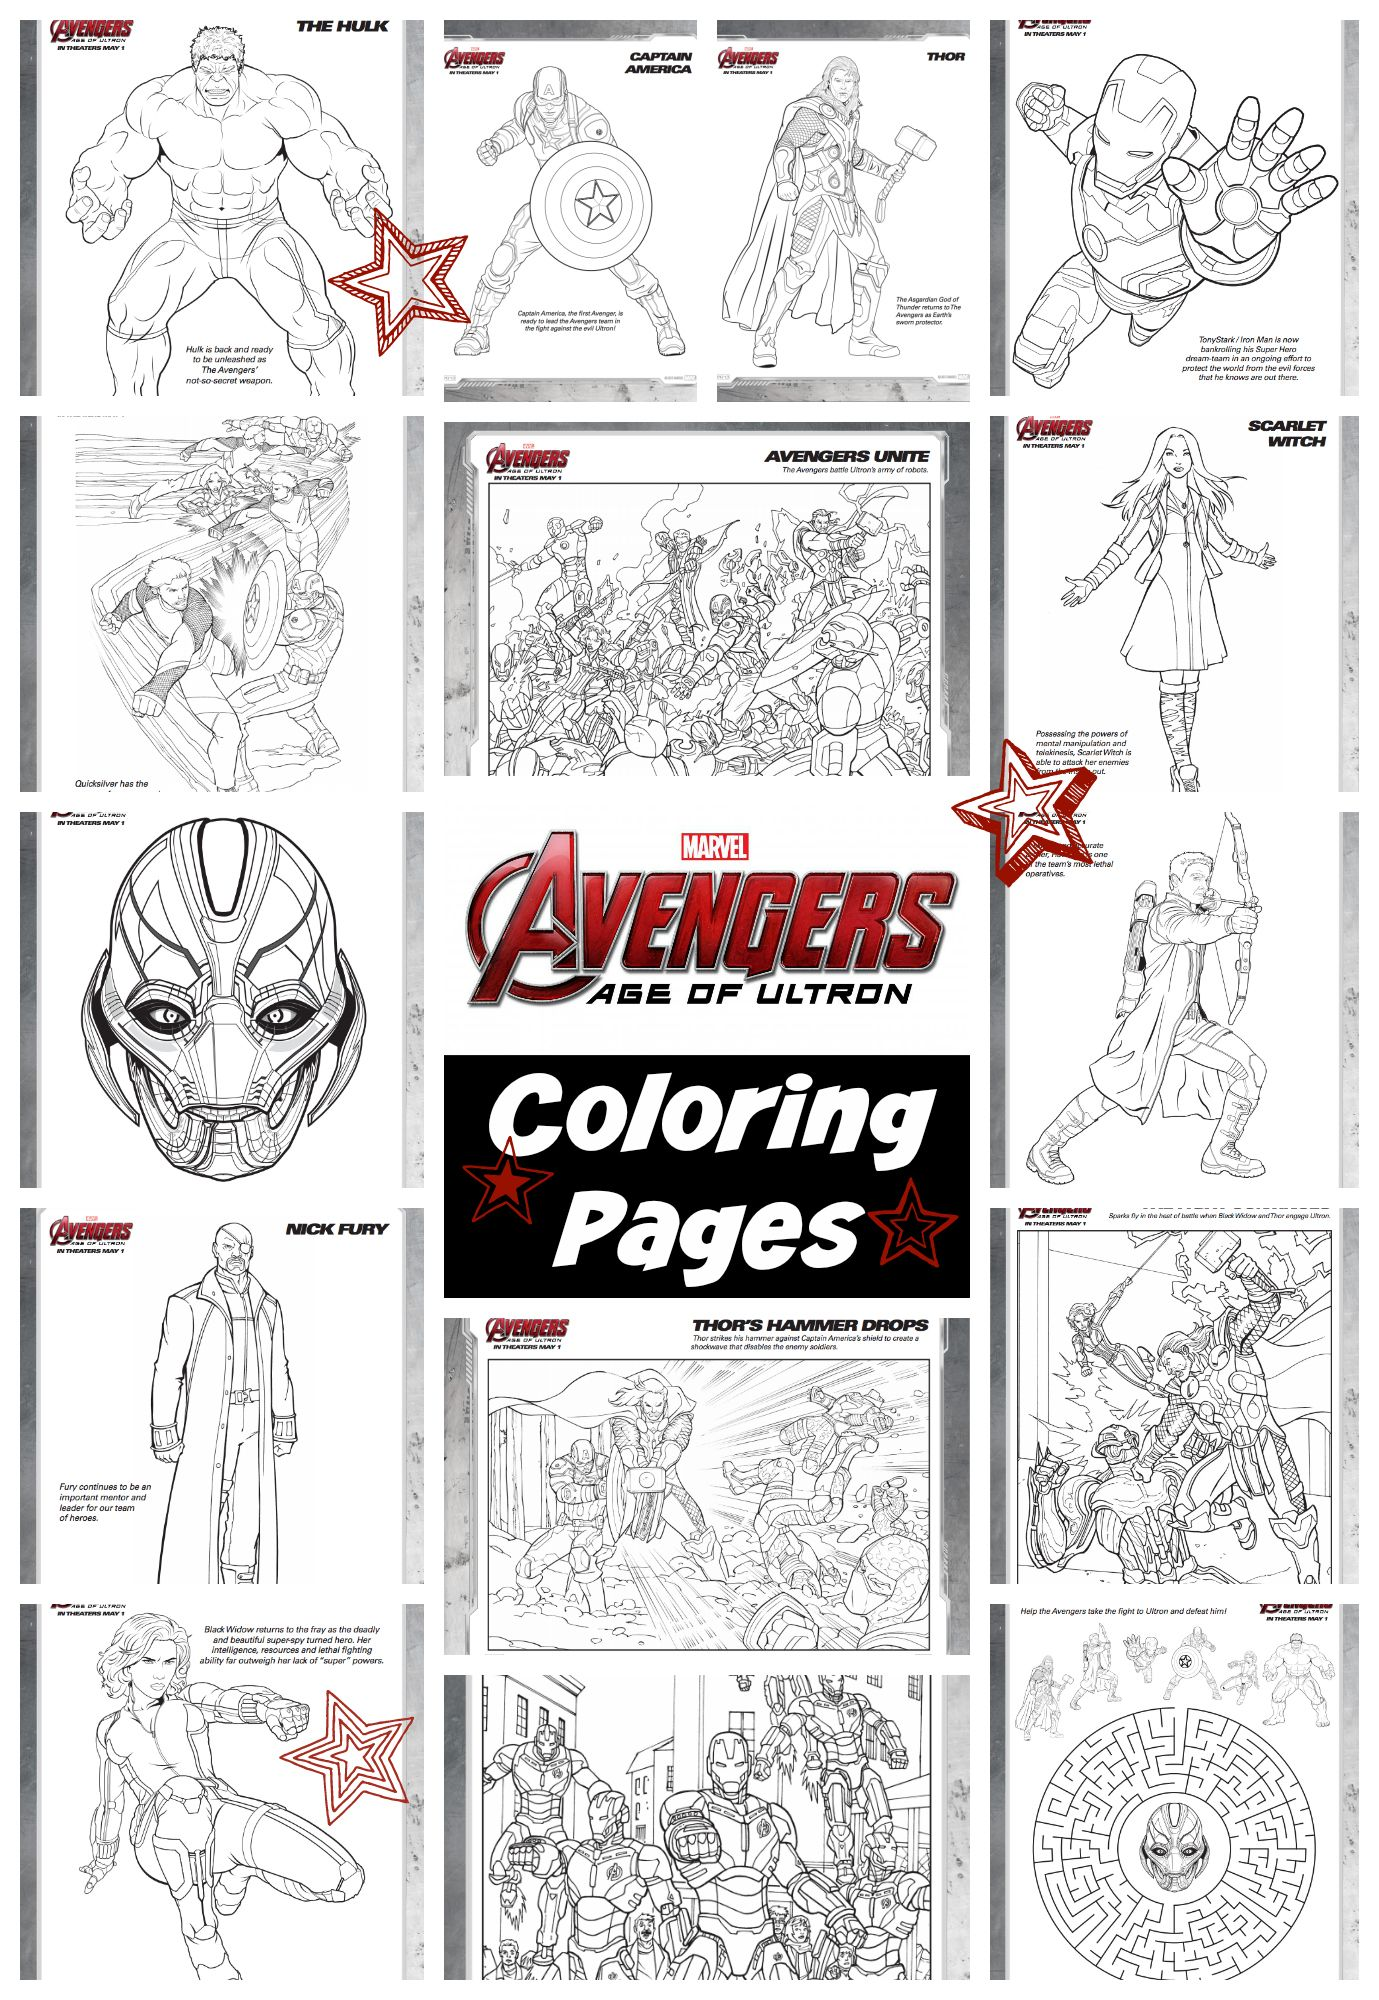 Free coloring pages for avengers - Avengers Age Of Ultron Coloring Pages